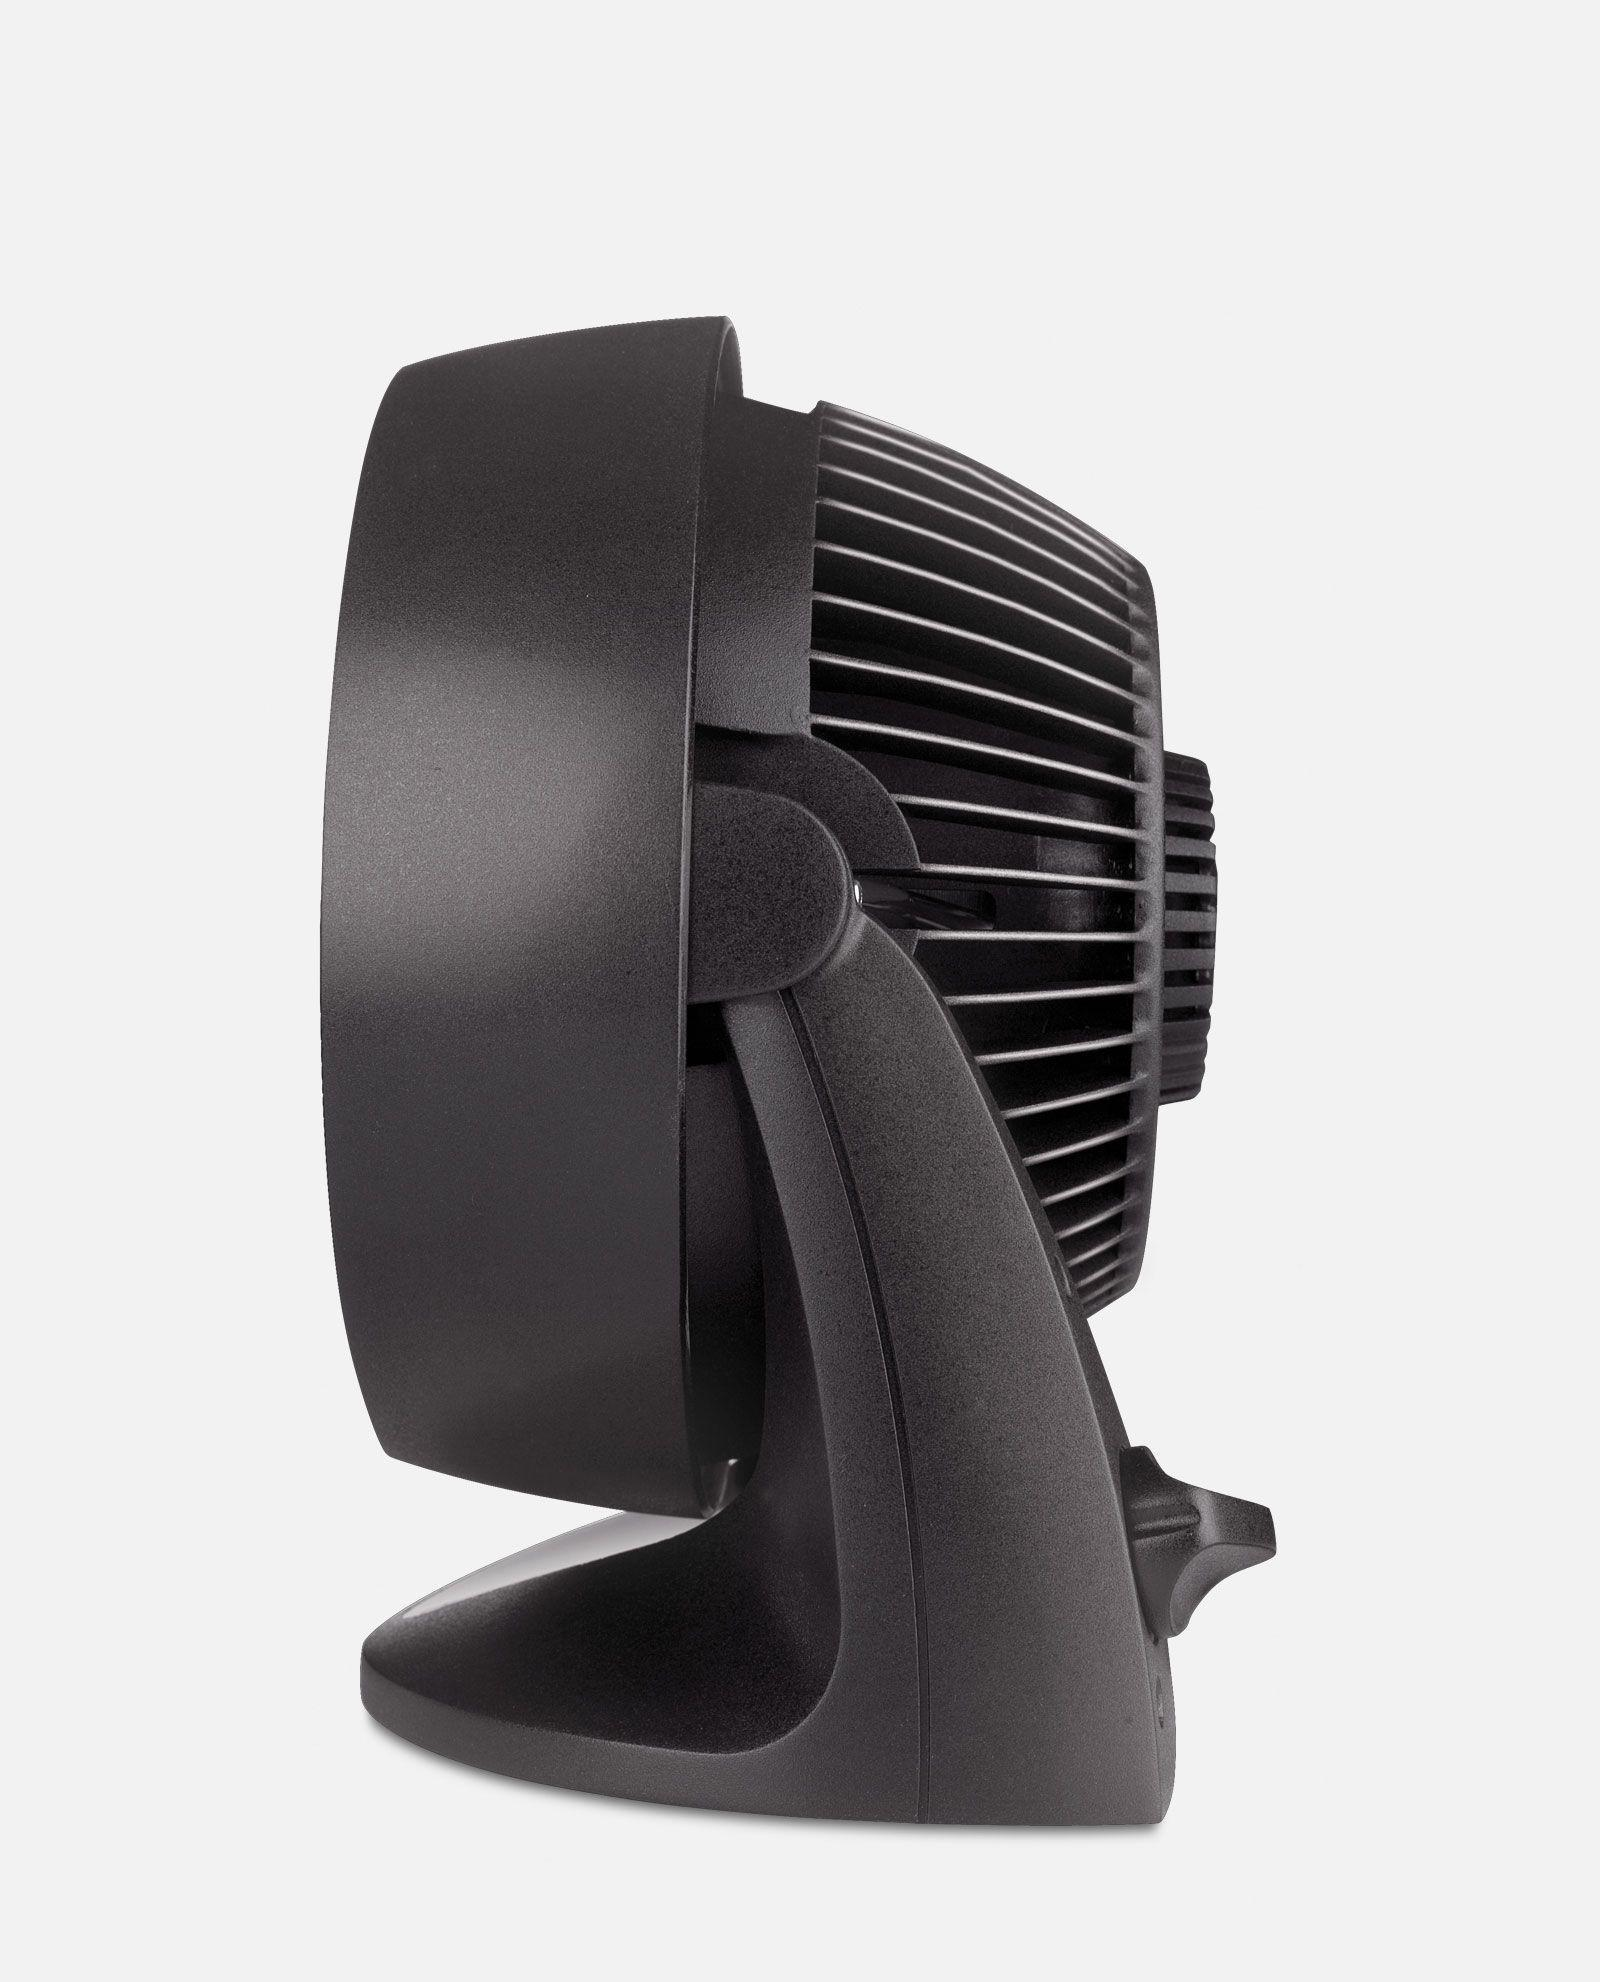 753 large air circulator vornado for Air circulation fans home